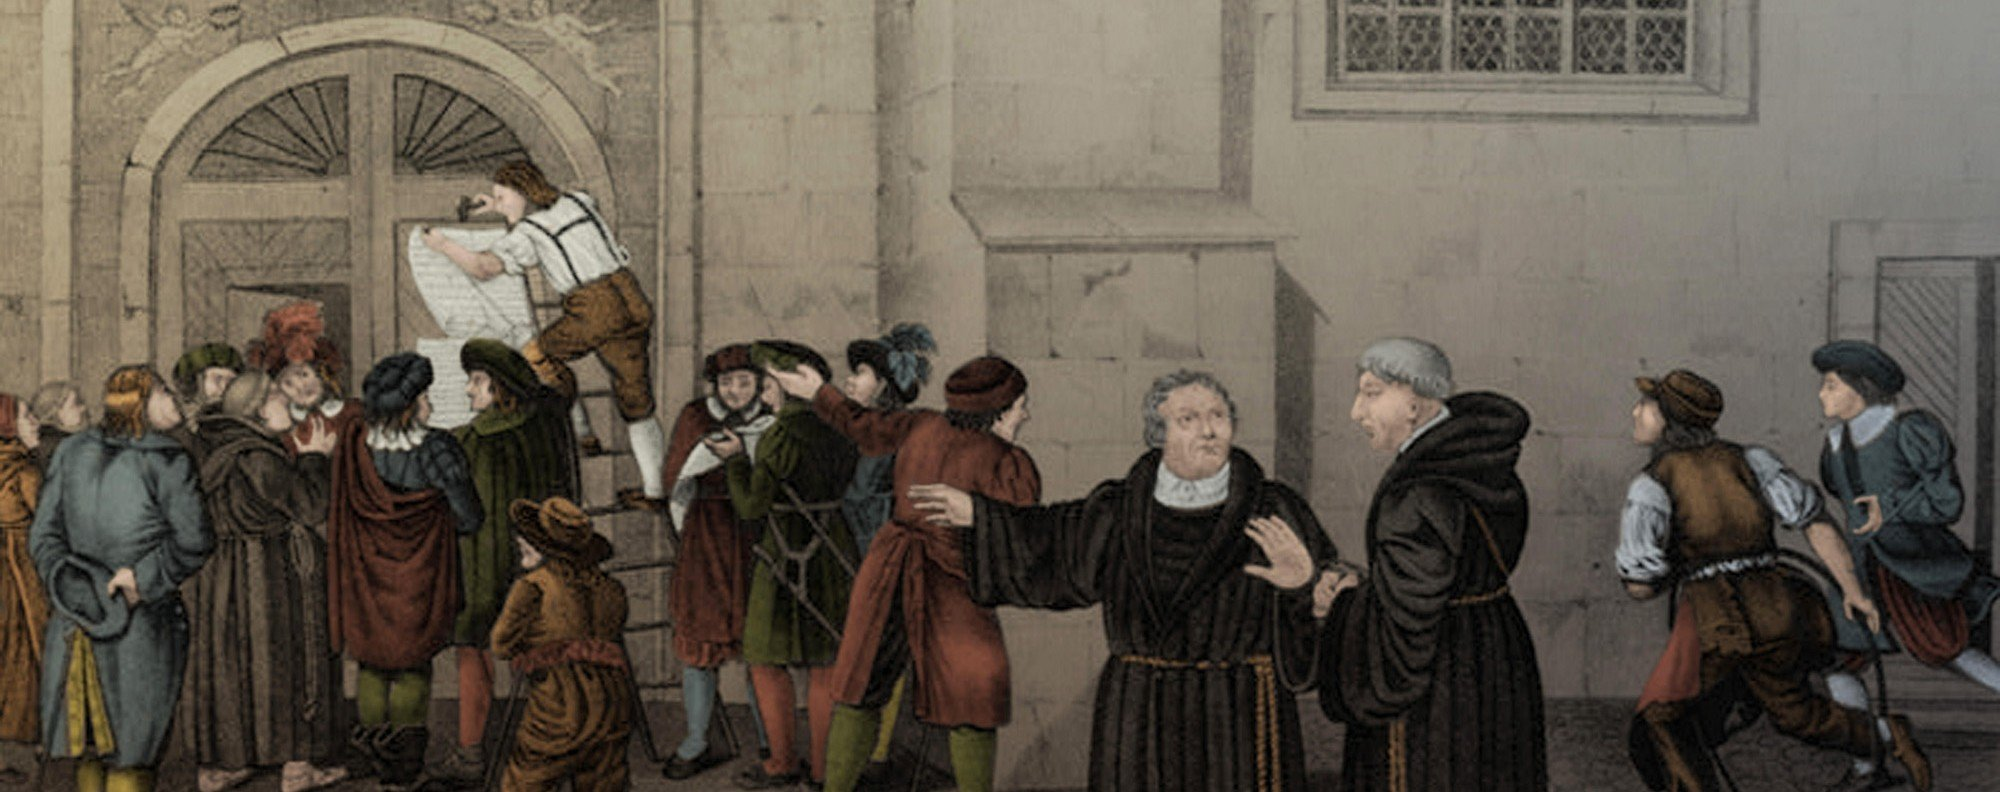 An 1830 lithograph shows a crowd gathering to watch Luther post his 95 Theses on the church door.